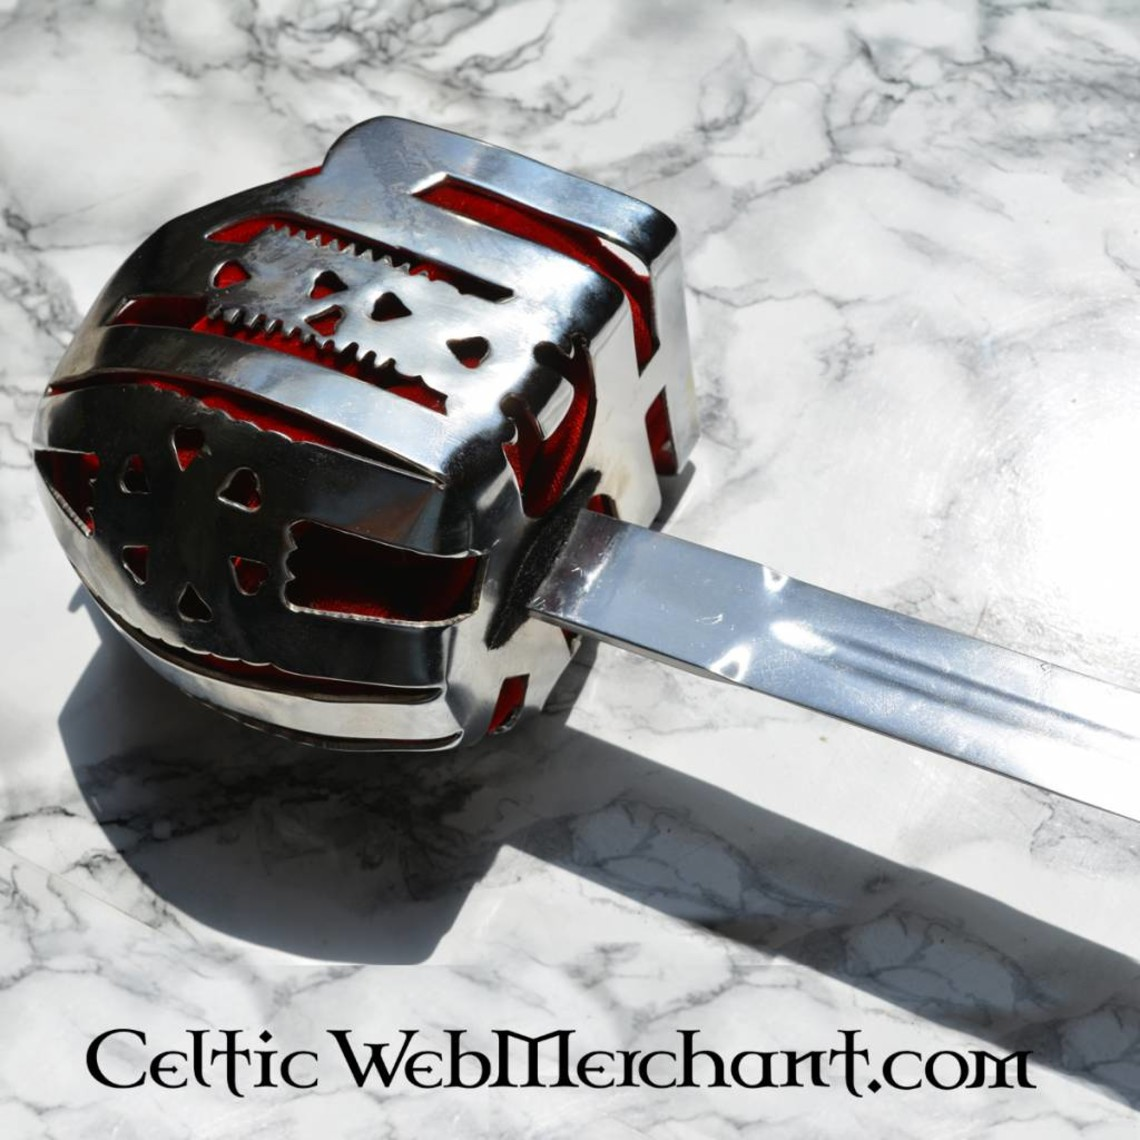 Deepeeka Basket hilted broadsword Culloden, Glasgow basket